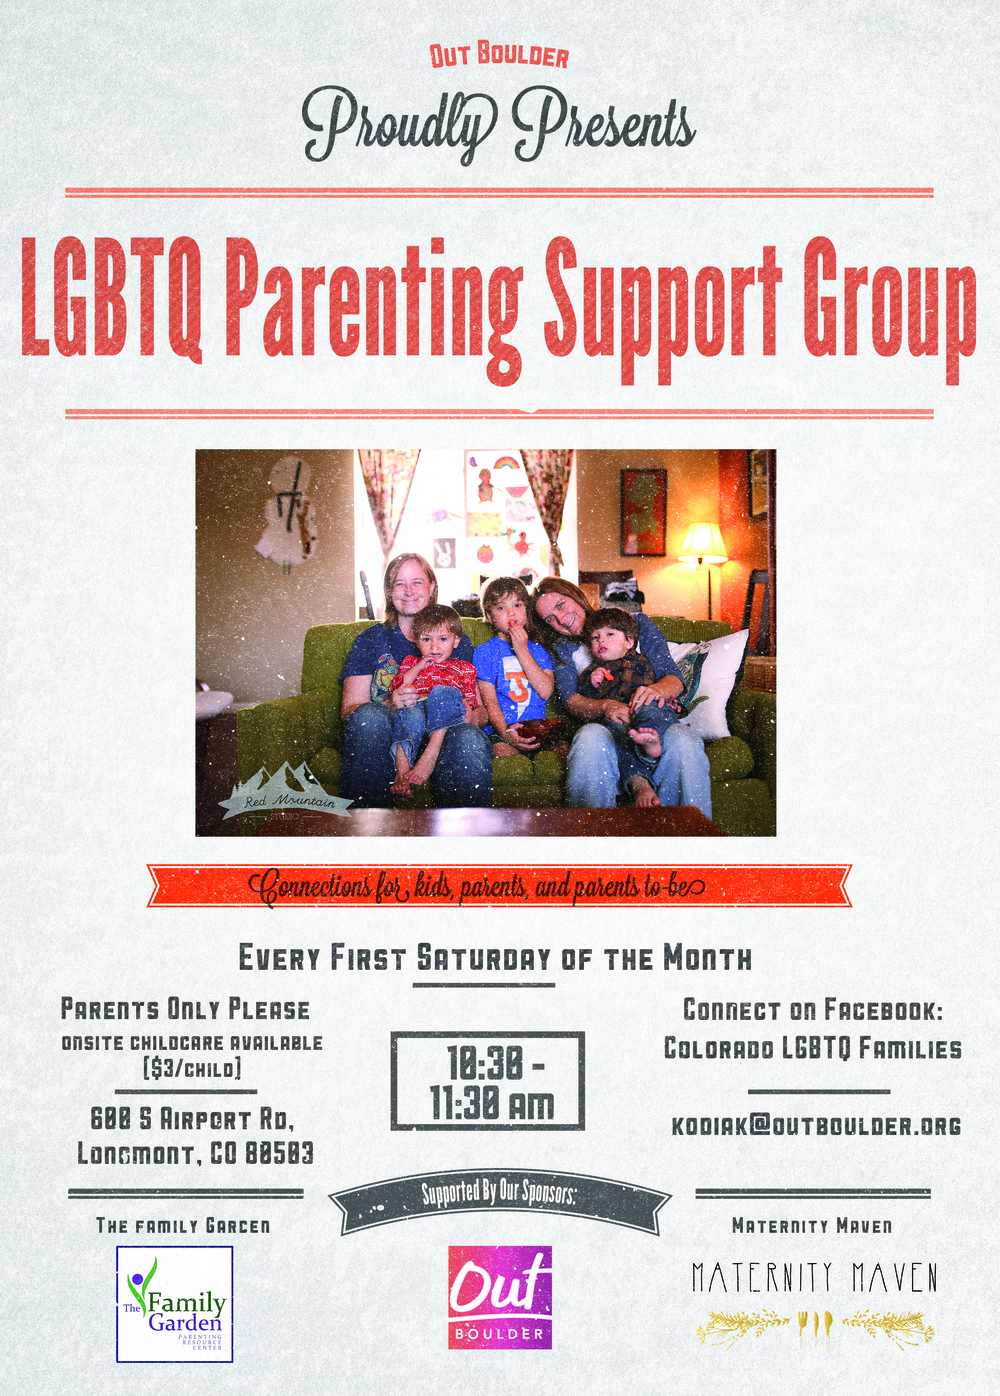 LGBTQ Parenting Support Group Lesbian Moms Gay Dads